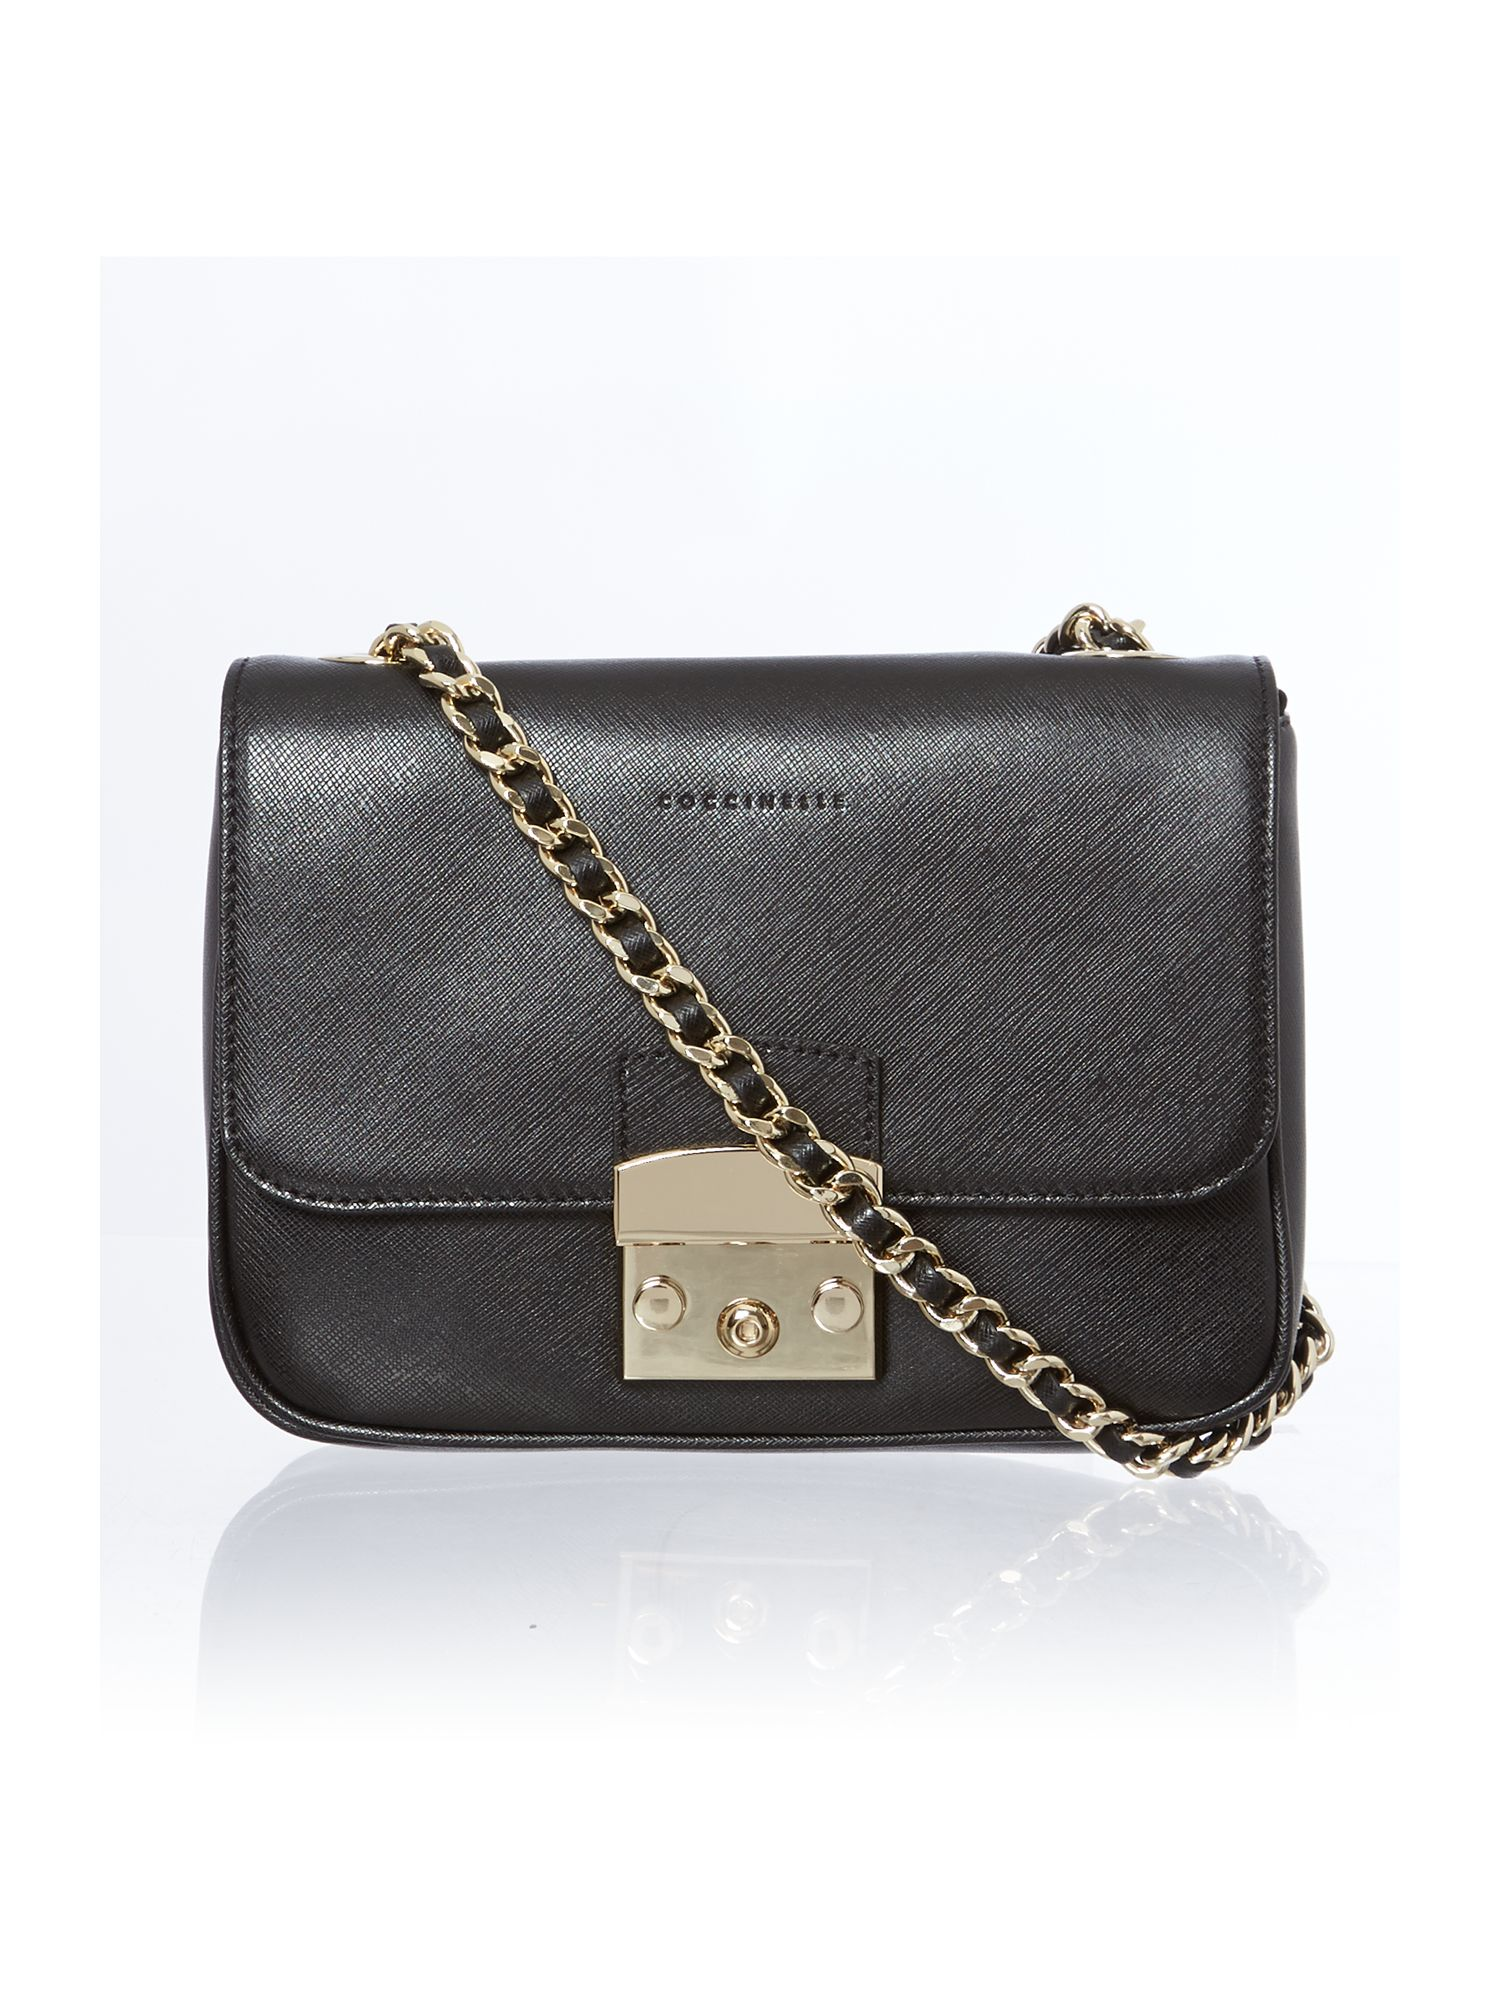 Black small chain cross body bag